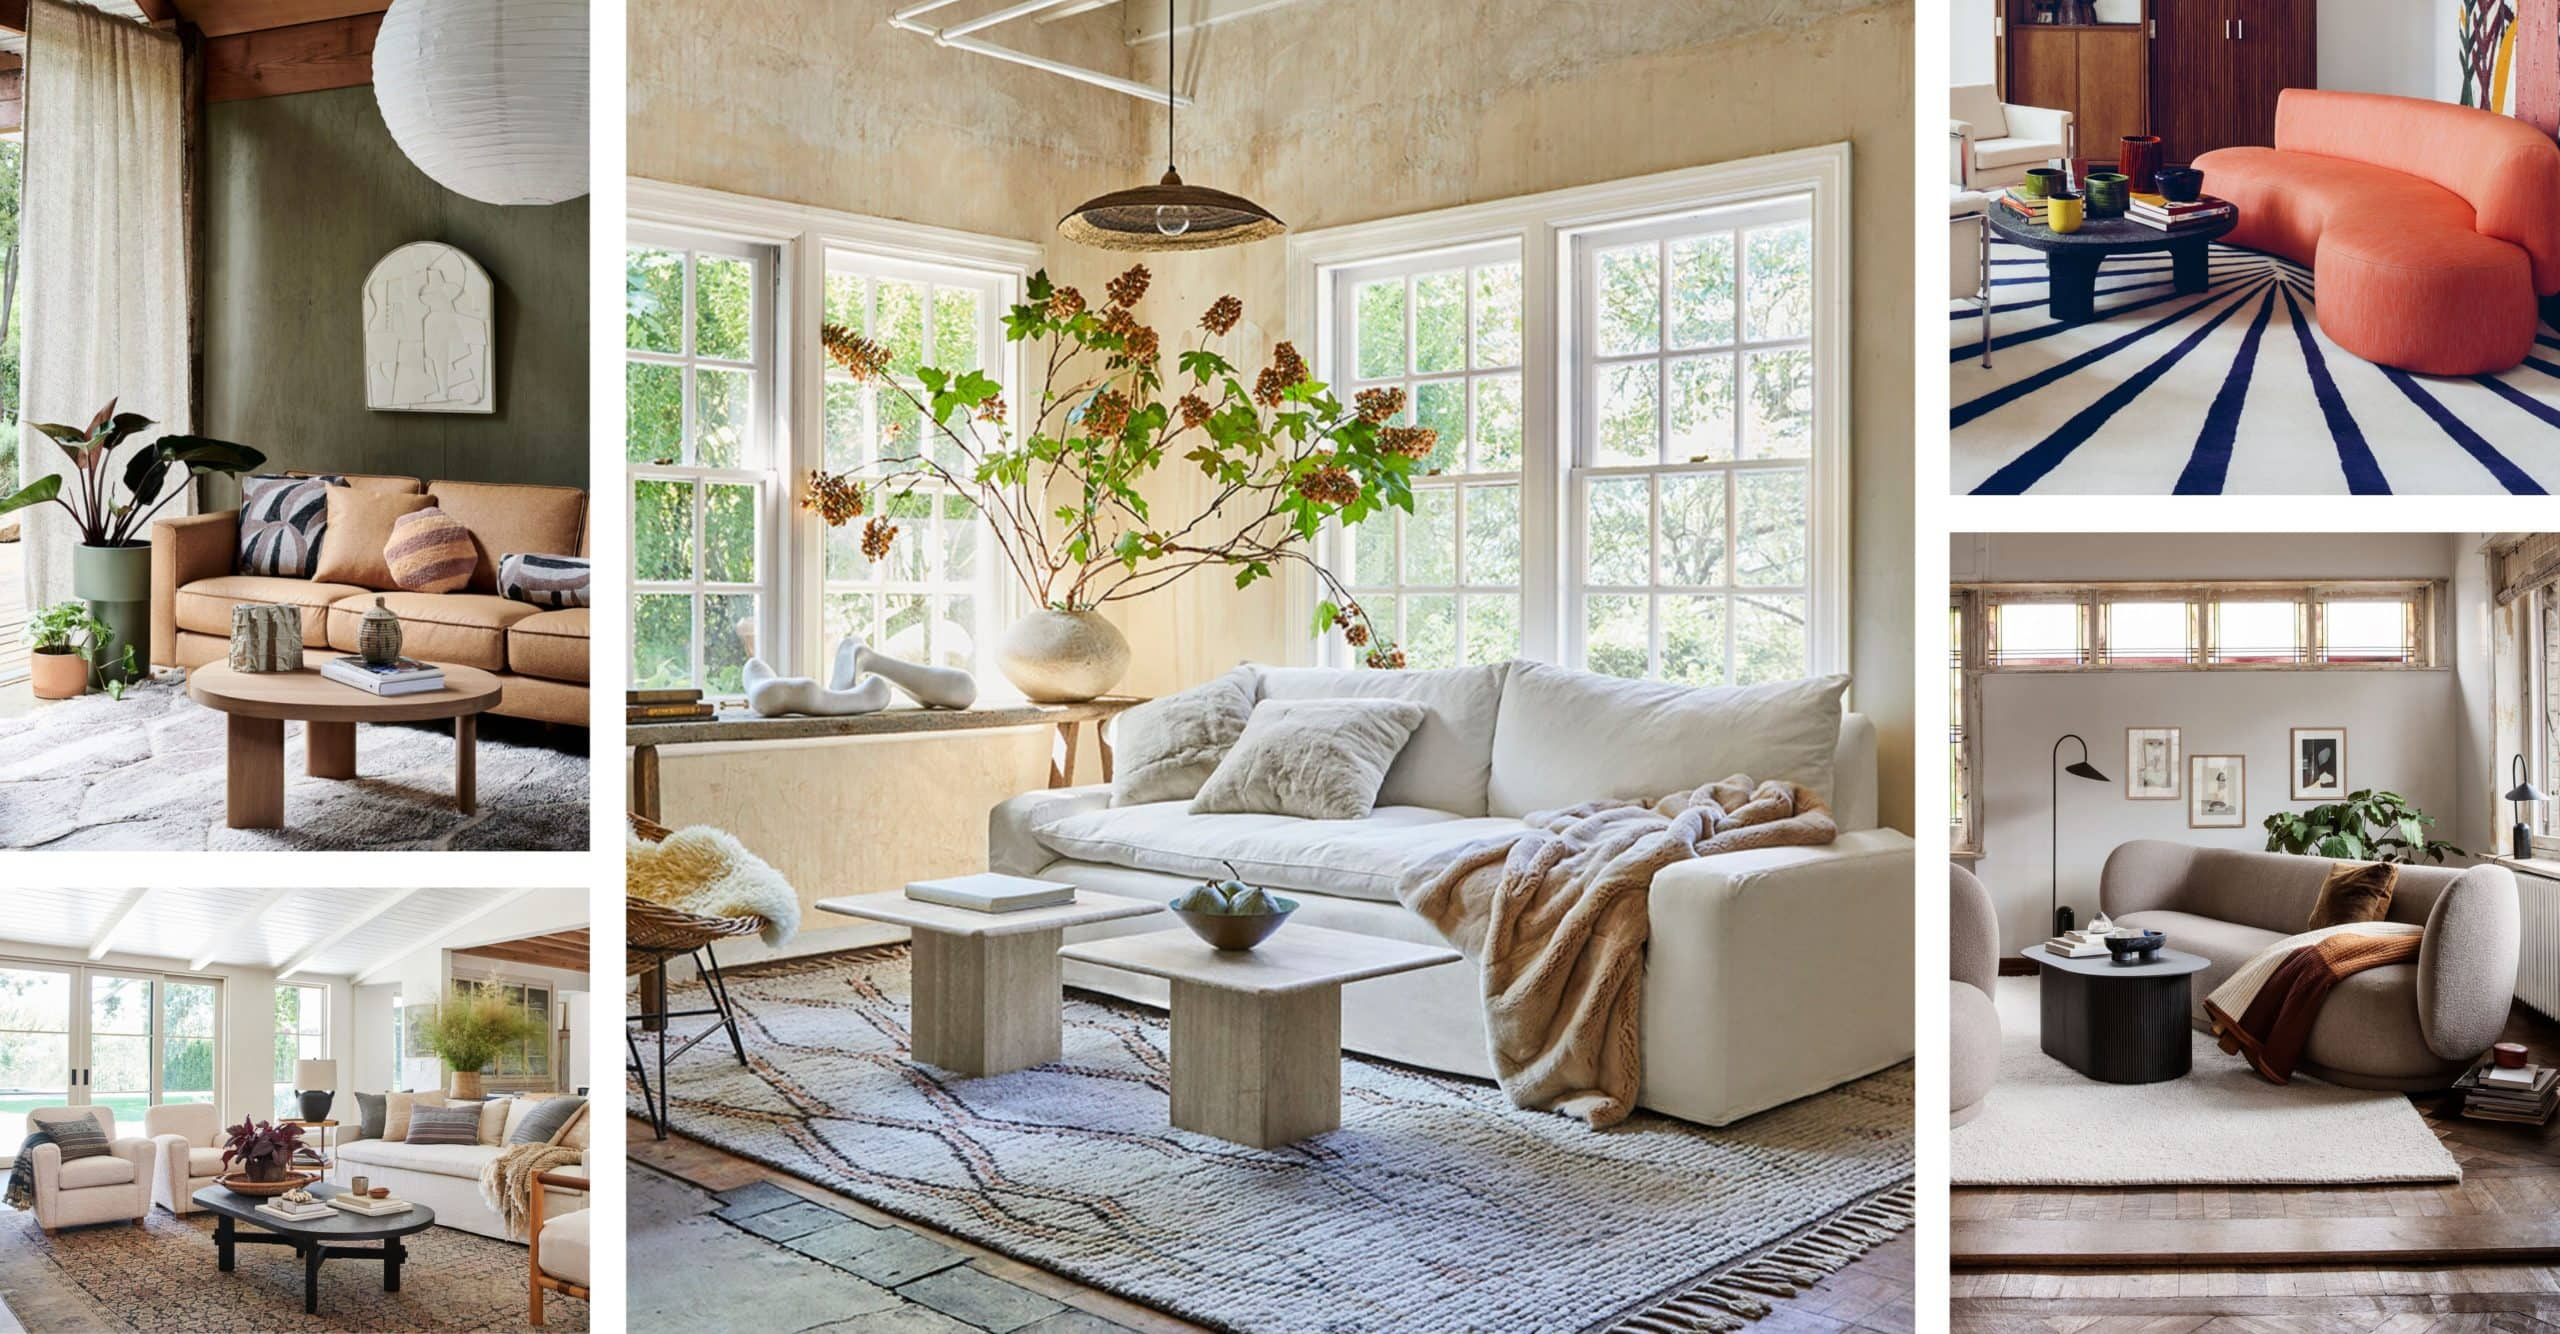 The Living Room Trends We&39;re Predicting For 2021 And How To Add Them To Your Home   Bobby Berk